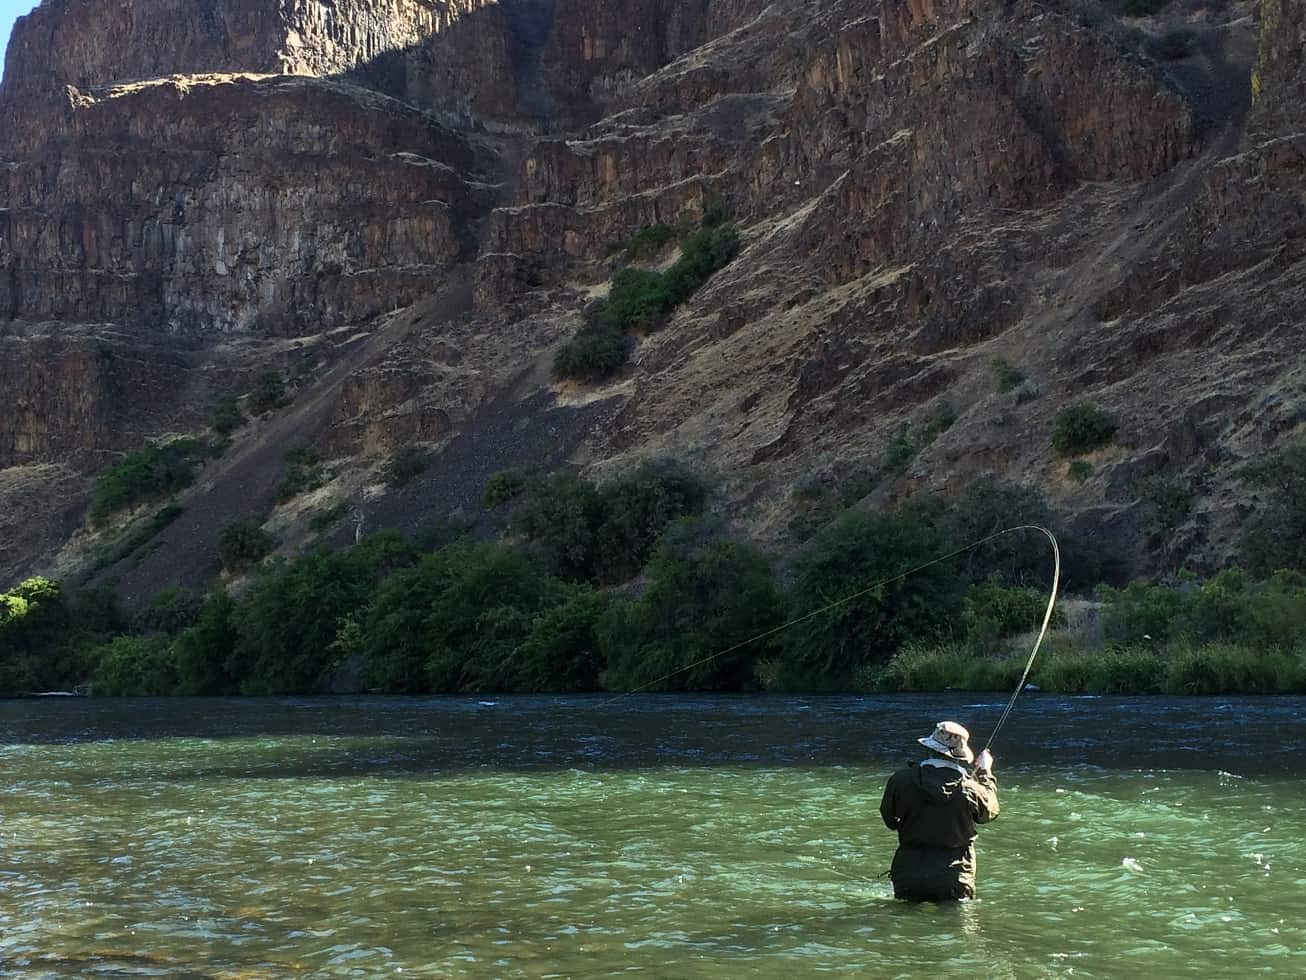 Fly fishing for deschutes river steelhead for Fly fishing for steelhead